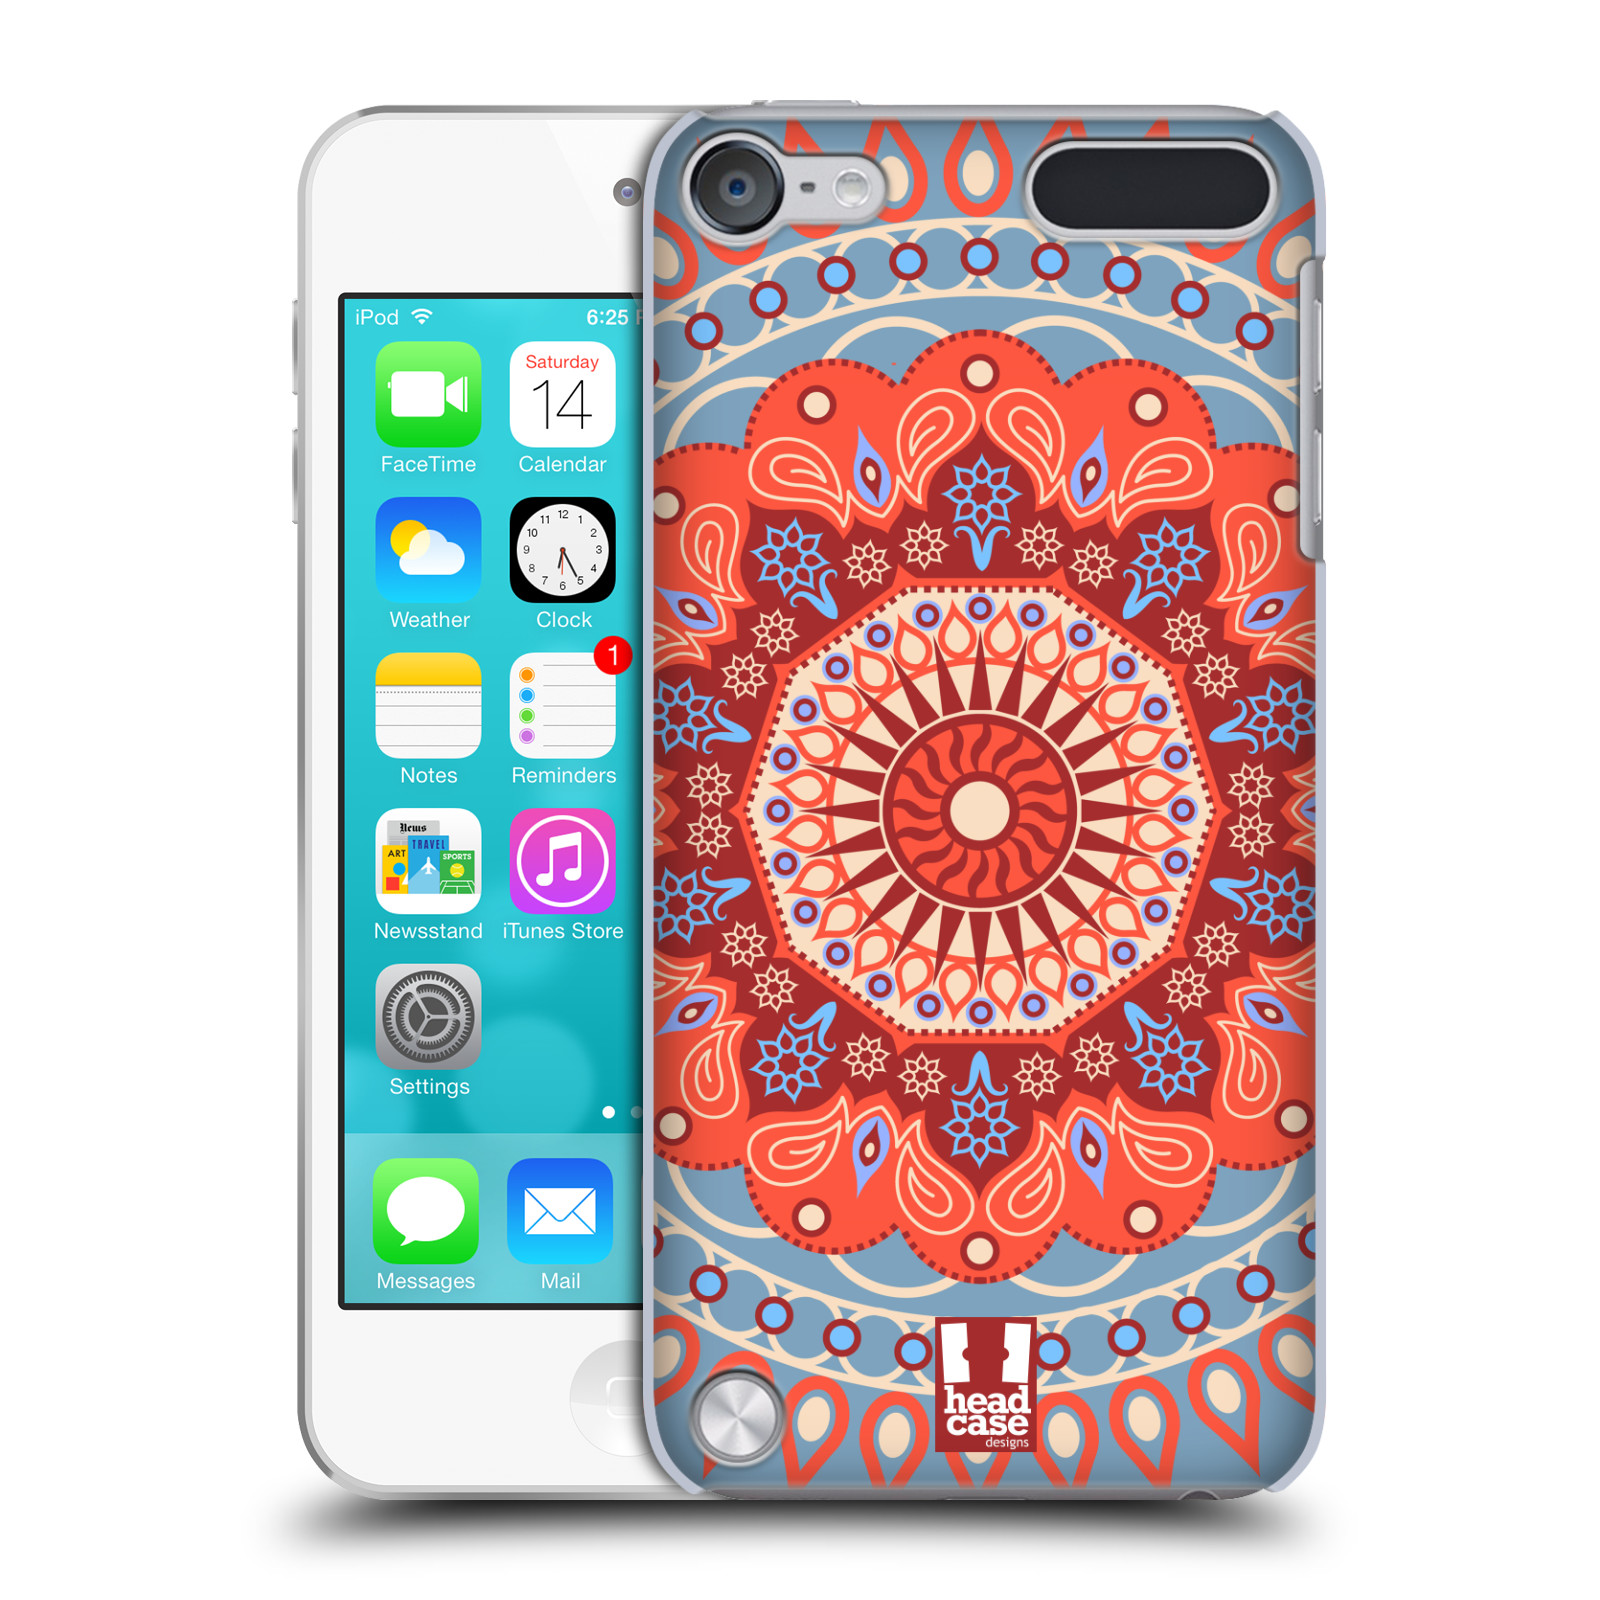 HEAD CASE DESIGNS MANDALA HARD BACK CASE COVER FOR APPLE iPOD TOUCH 5G 5TH GEN